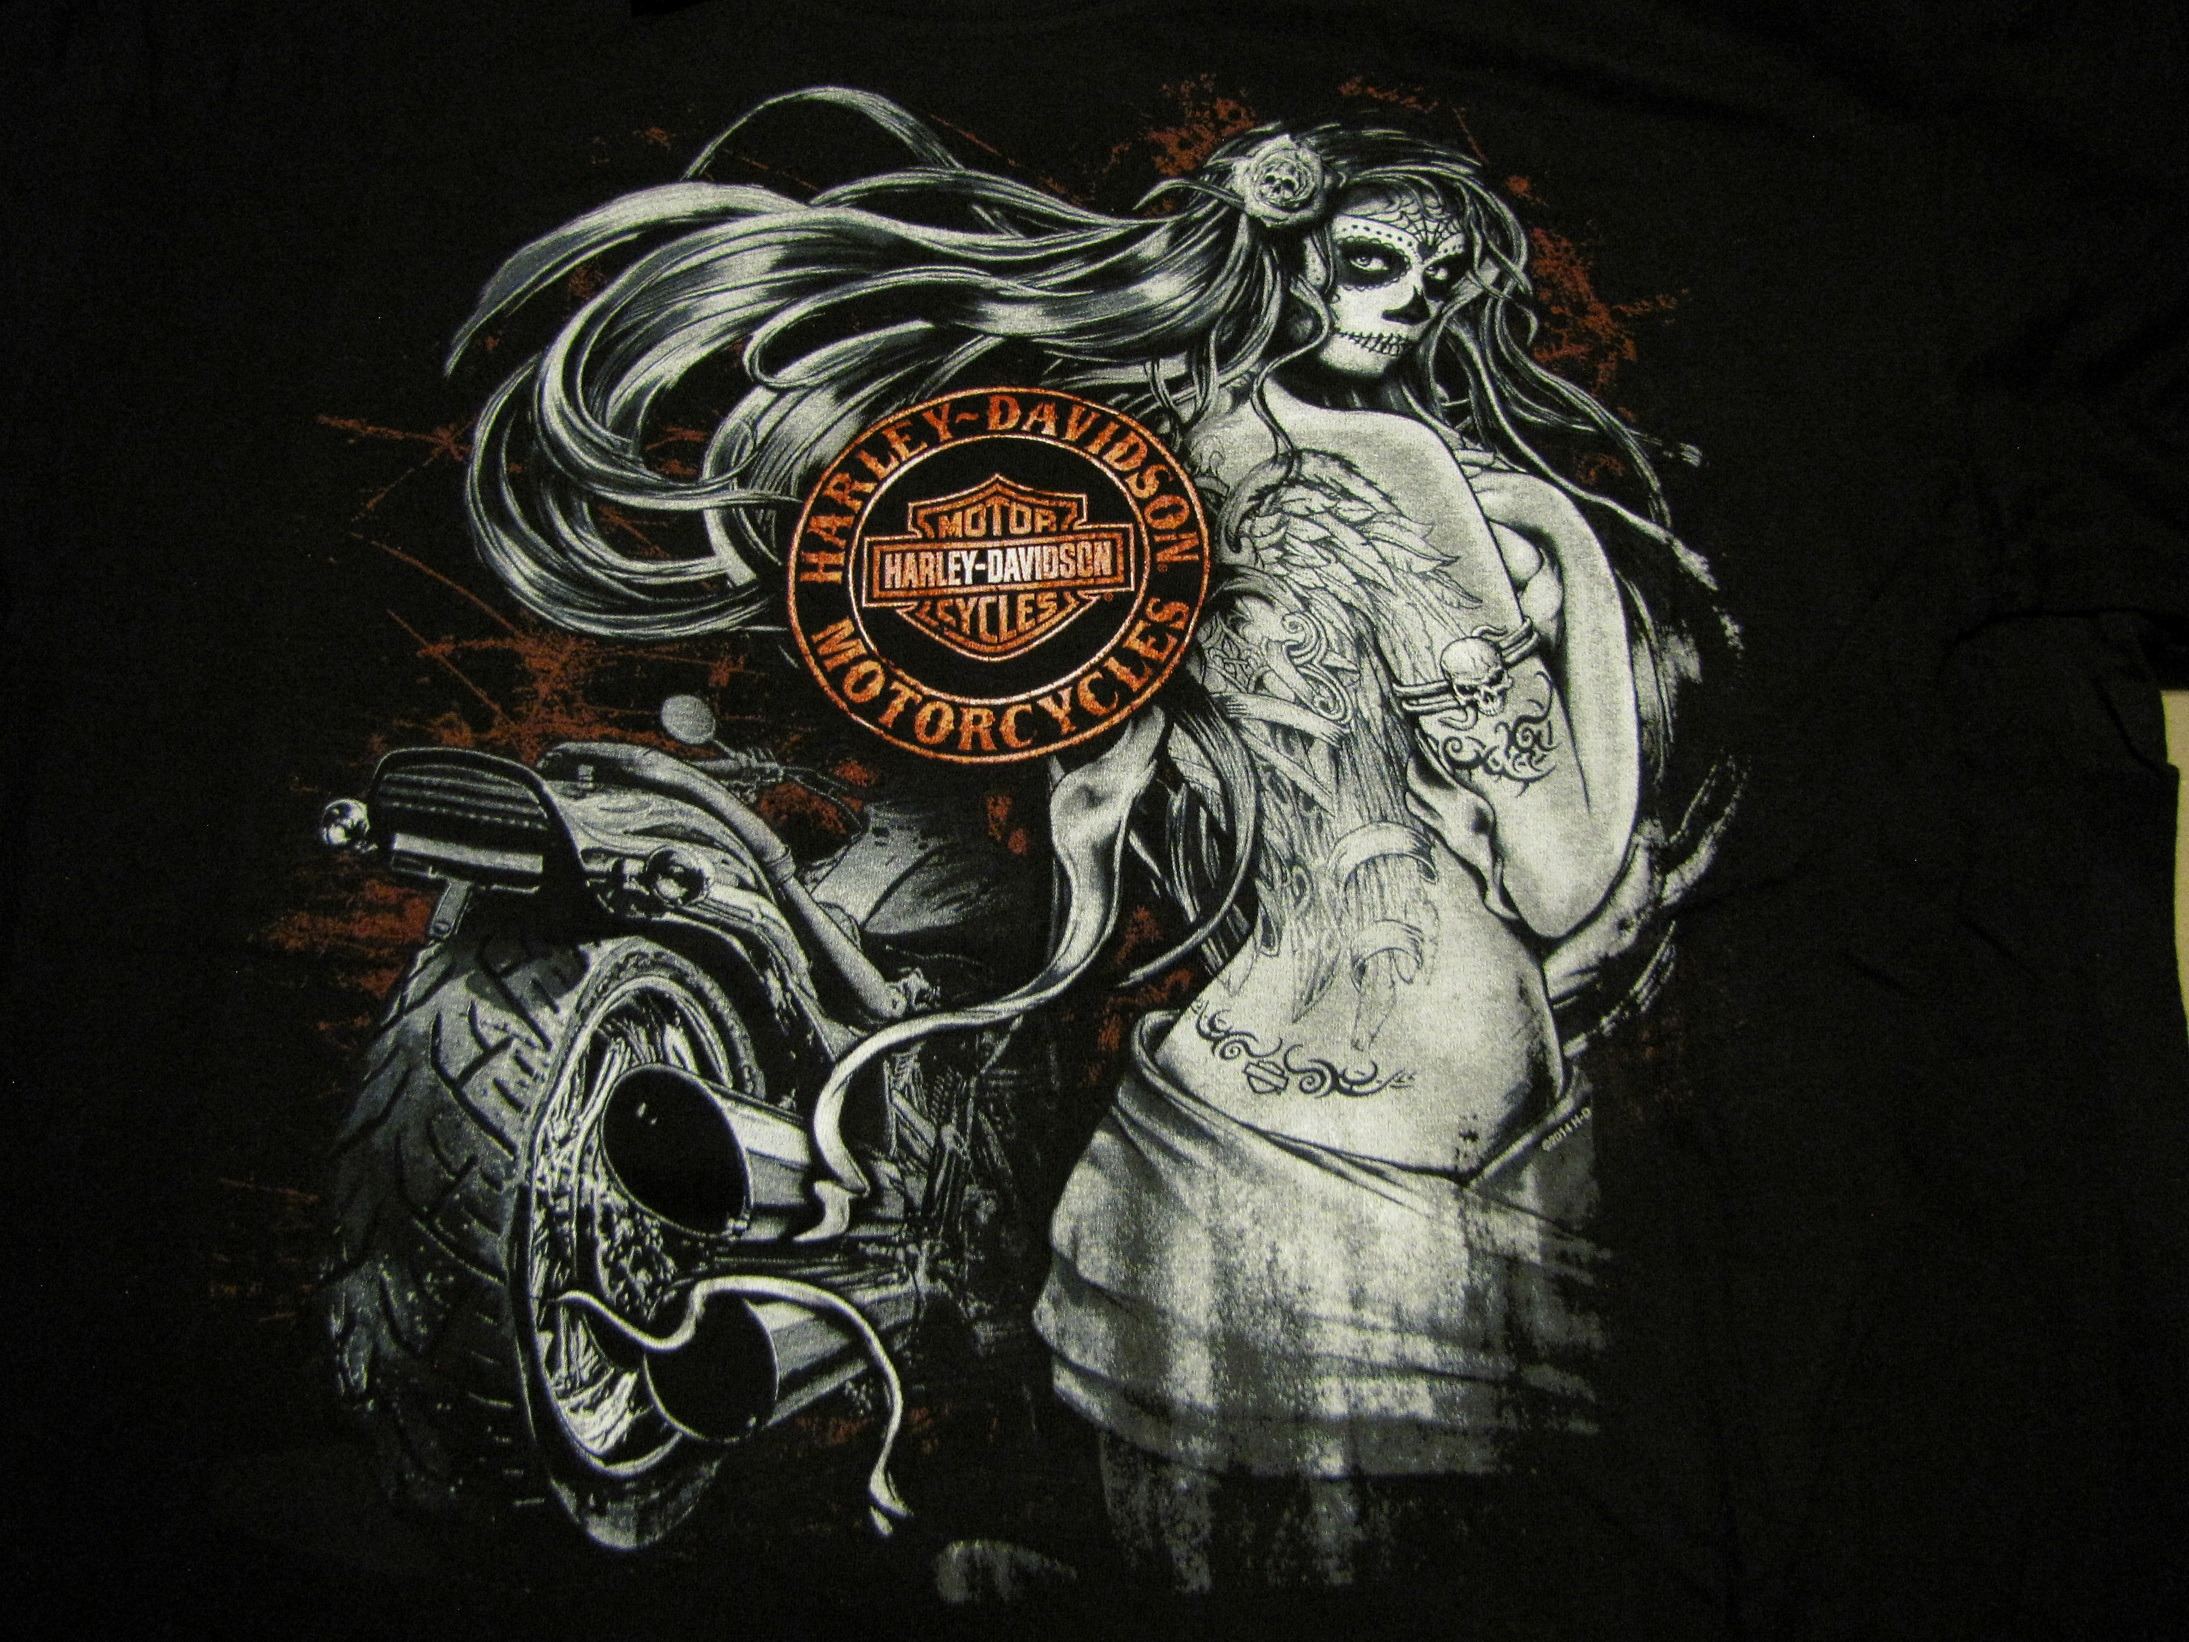 HD-11 Black Widow Harley Davidson T-Shirt XL